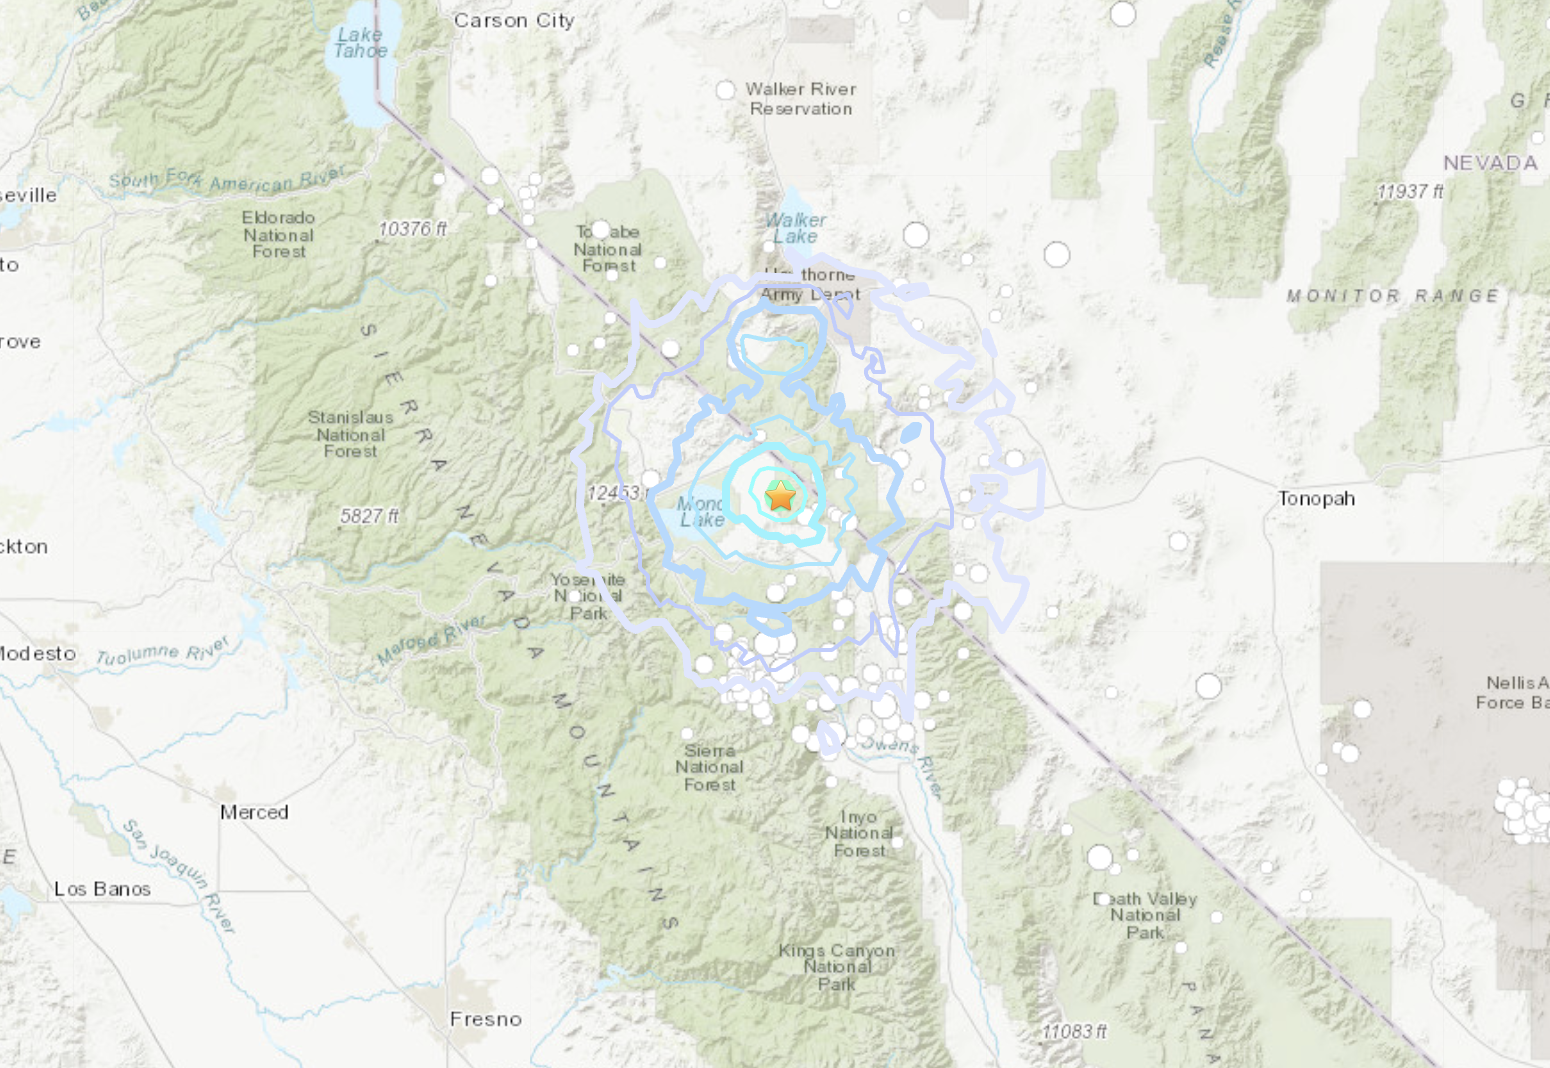 A magnitude 4.0 earthquake rattled a forest area about 17 miles from Bodie, near the California border with Nevada on April 20, 2020, according to the U.S. Geological Survey.